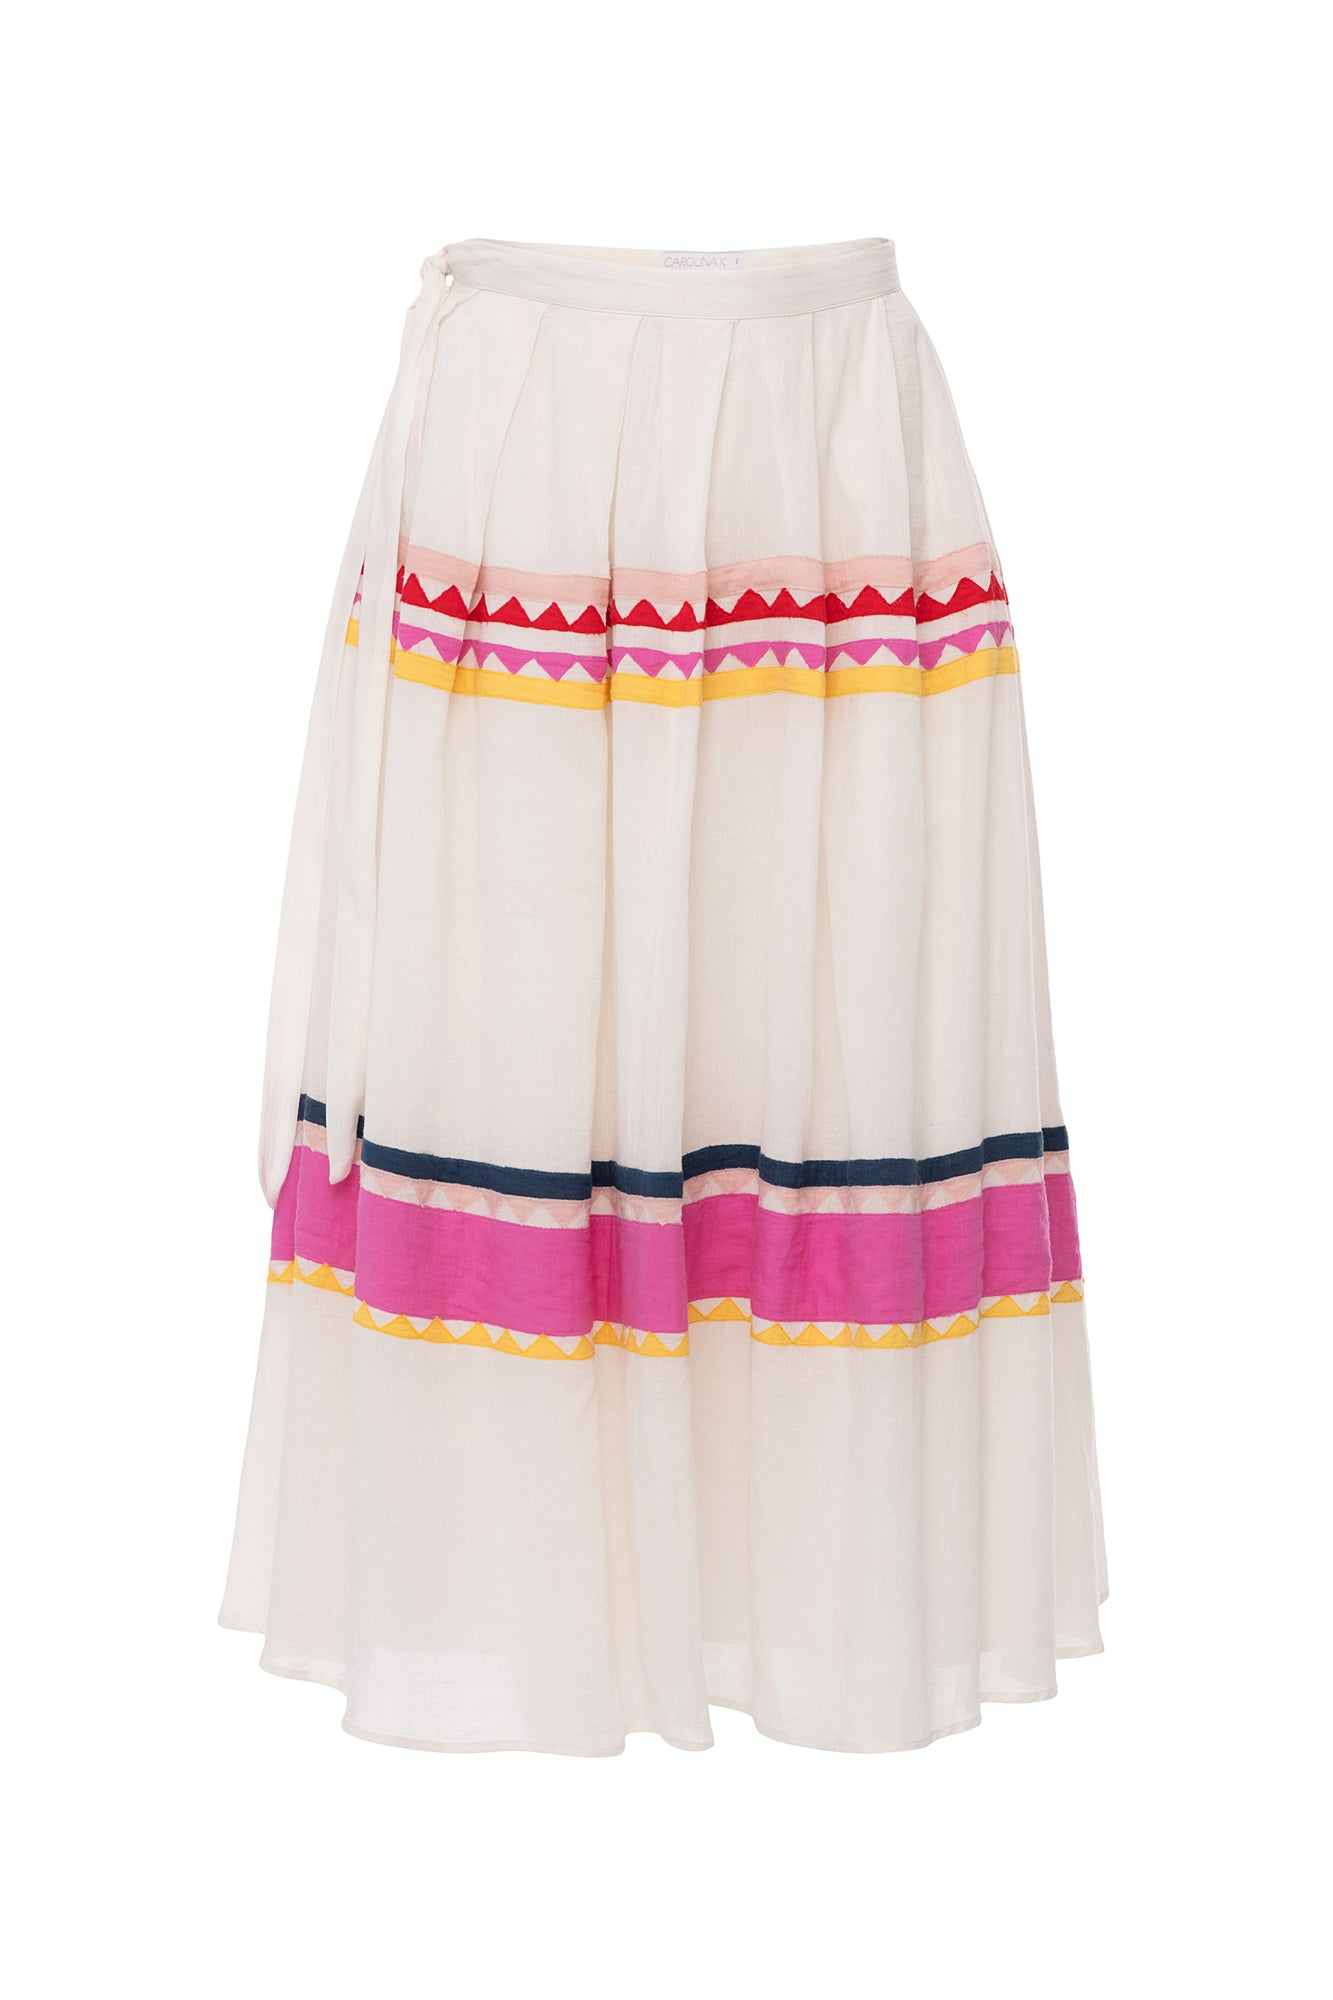 Carolina K Rosa Skirt White/Triangles